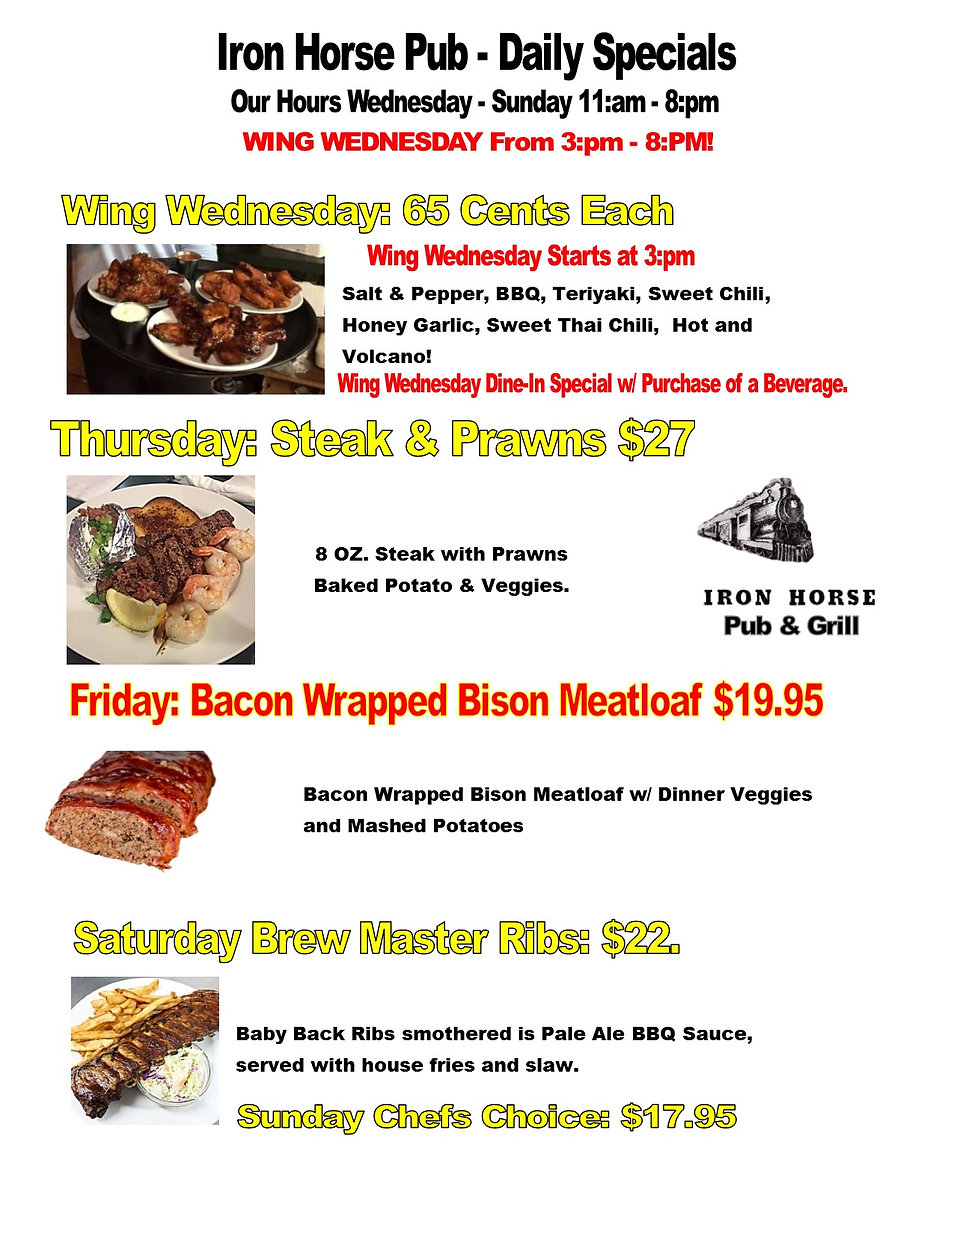 Iron Horse Pub - Daily Specials July 202